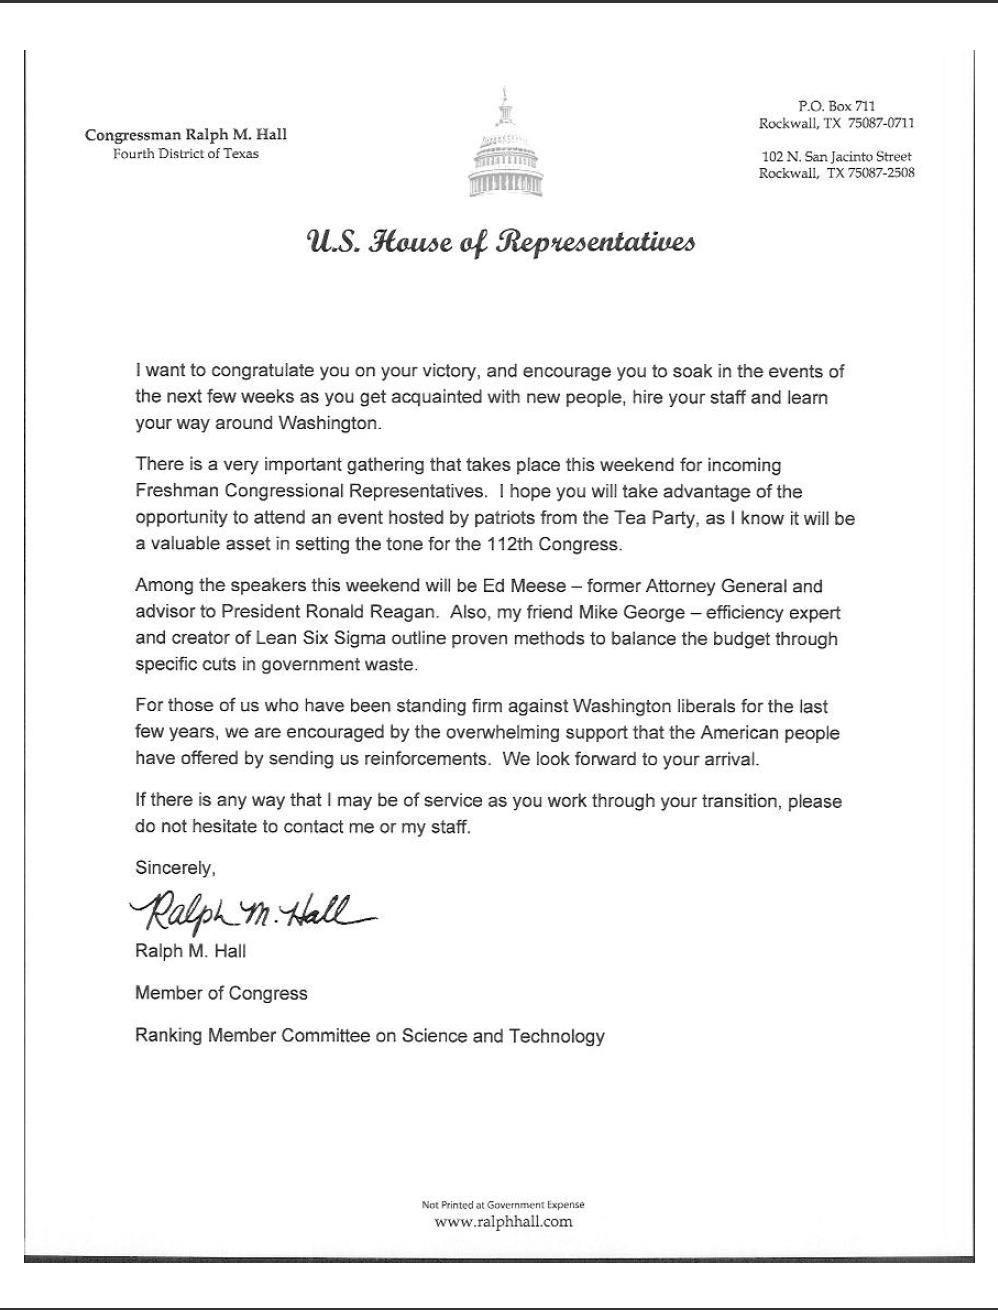 letter to congressman template example-Famous letter to congressman template image resume template how to write a letter to representative images 4-s